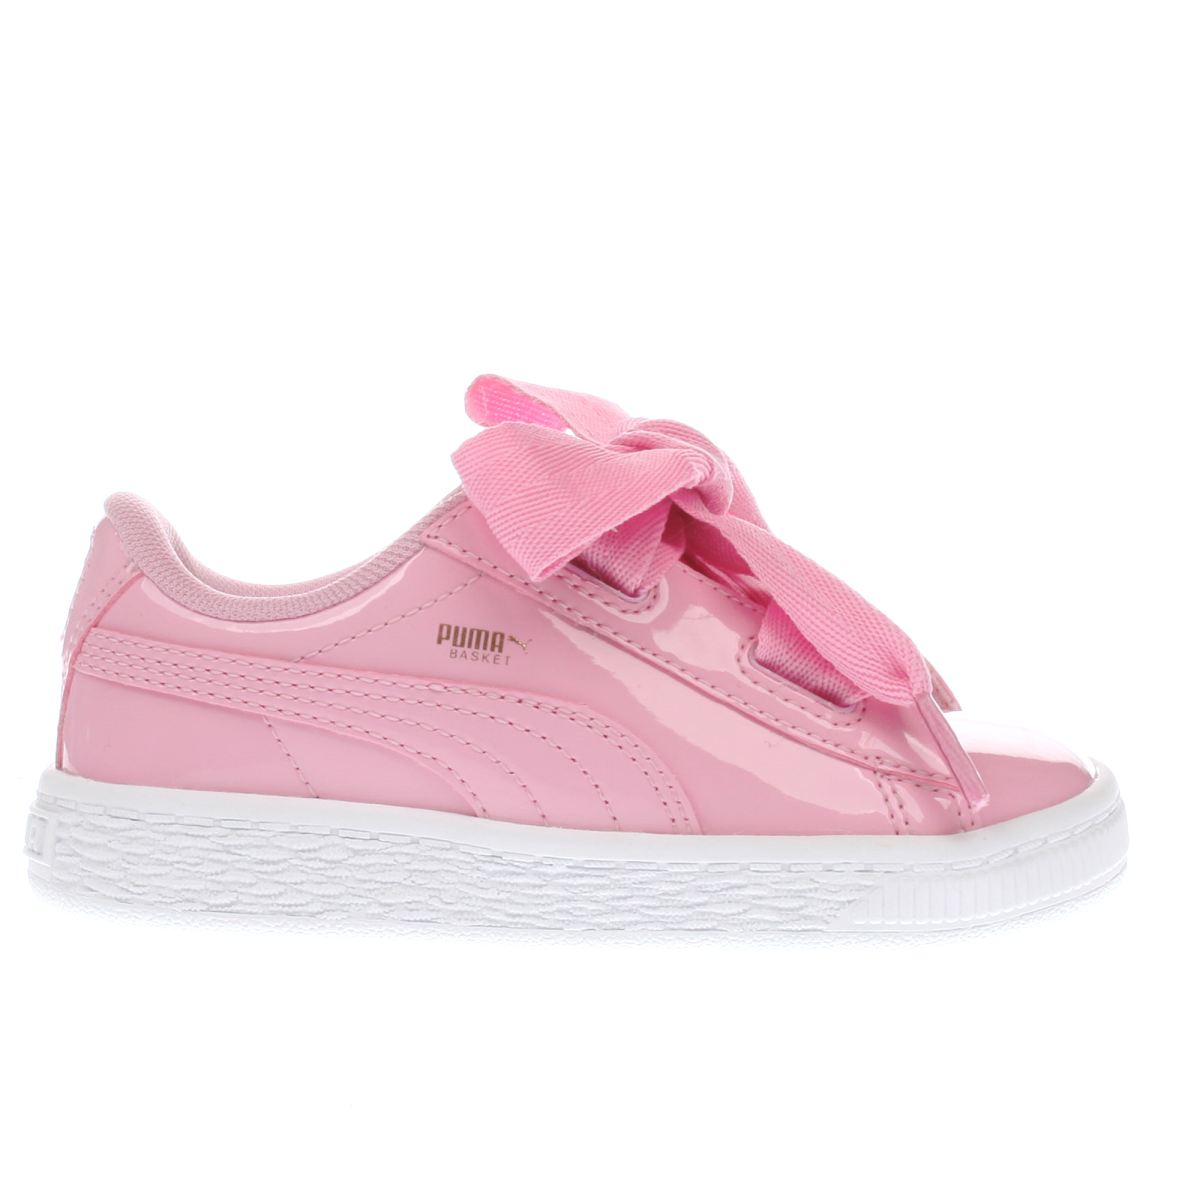 Puma Pink Basket Heart Patent Girls Toddler Toddler